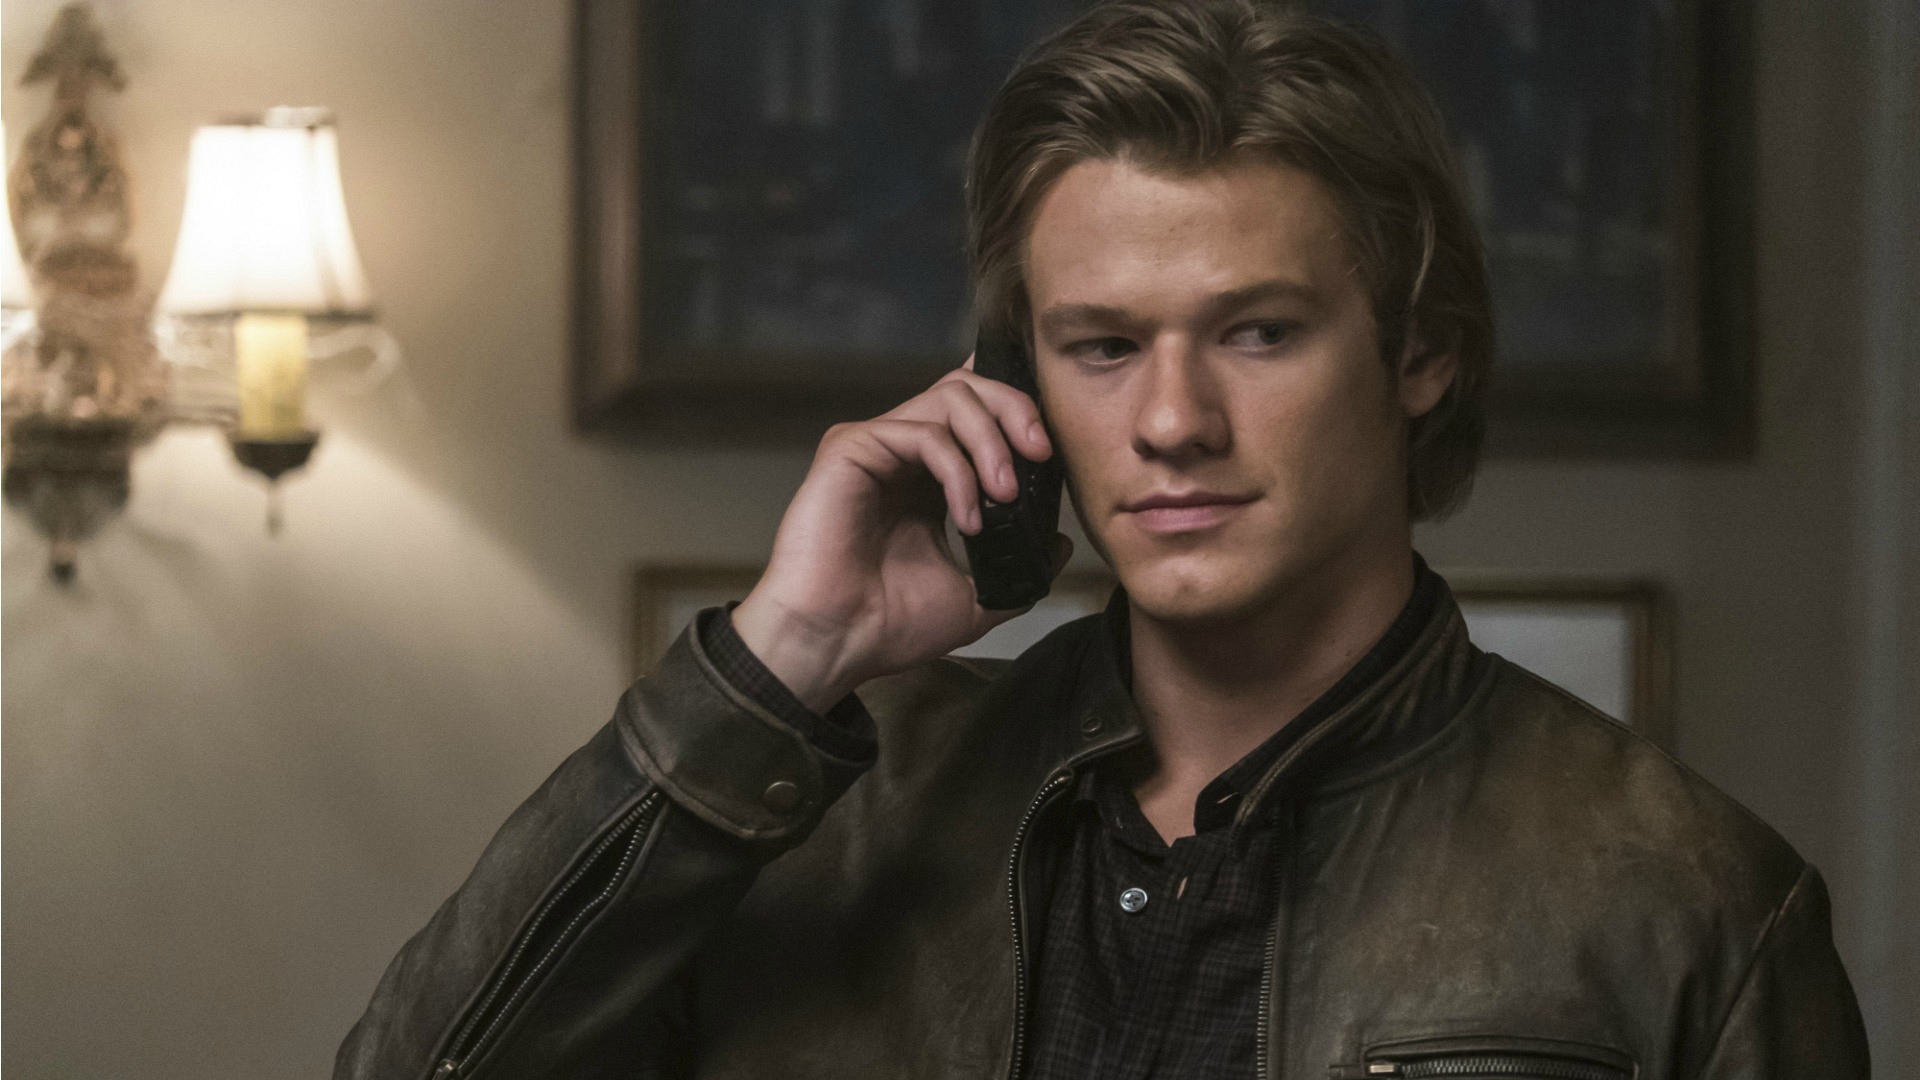 MacGyver receives a troubling phone call.